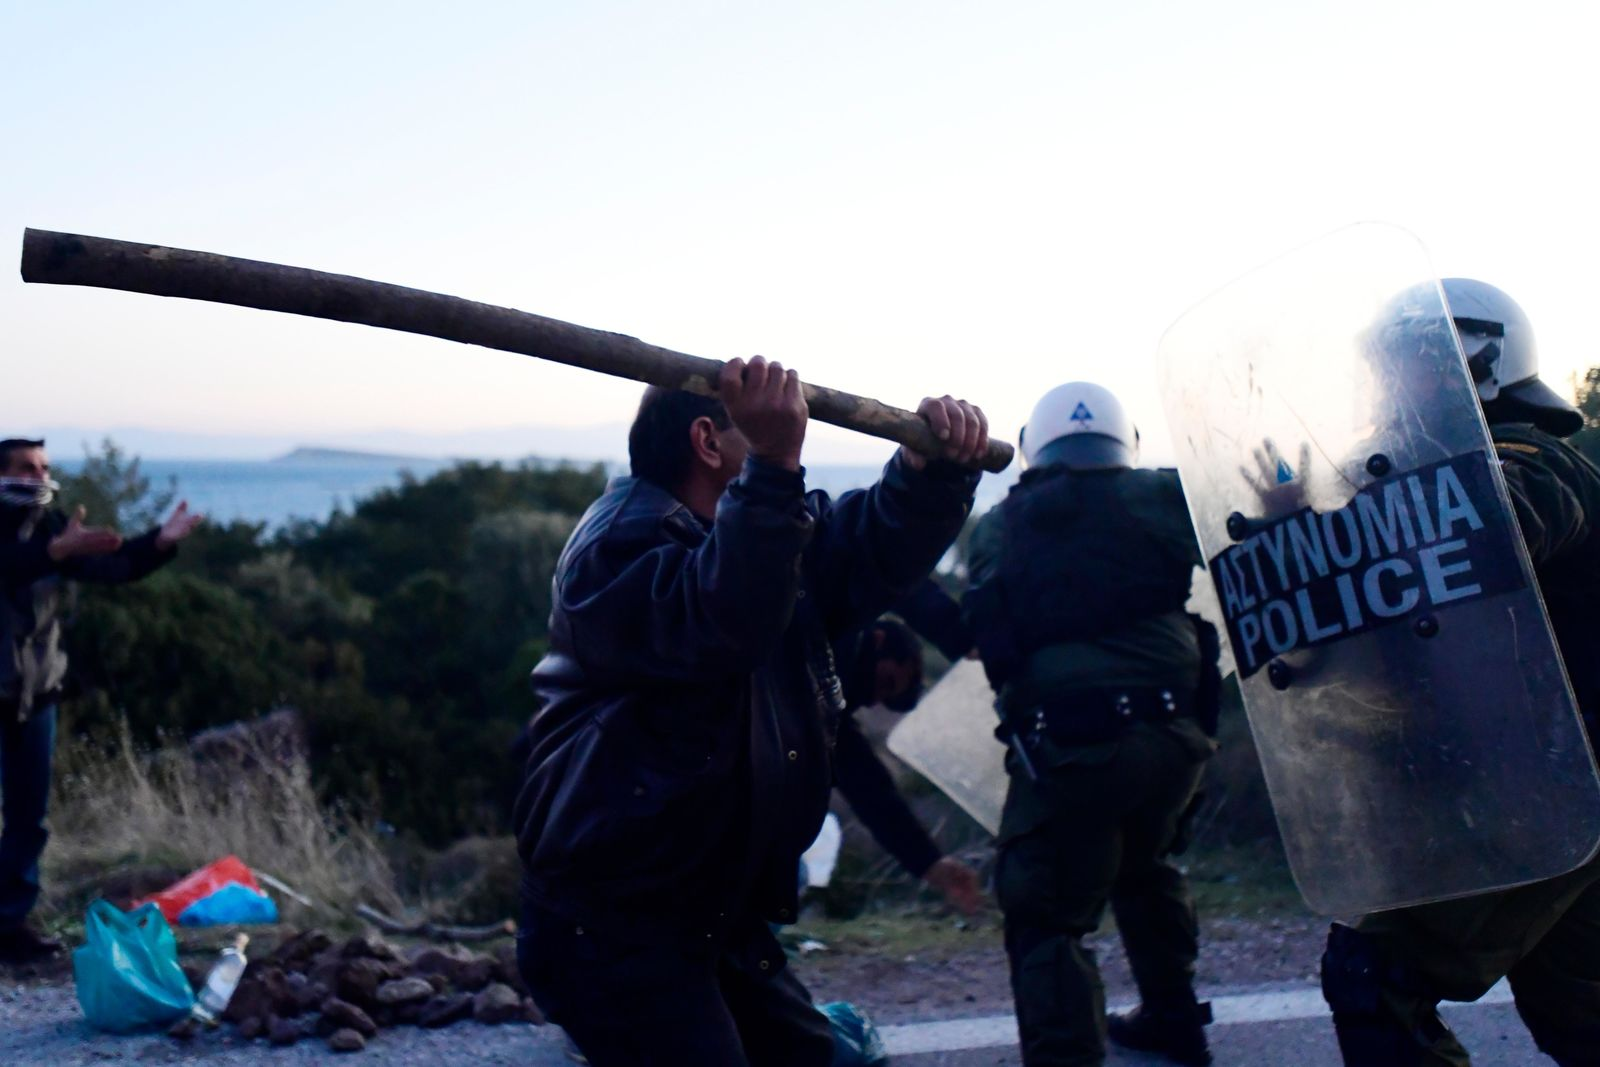 A local resident clashes with riot police at a roadblock in Karava village neat the area where the government plans to build a new migrant detention center, on the northeastern Aegean island of Lesbos, Greece, early Tuesday, Feb. 25, 2020. (AP Photo/Michael Varaklas)